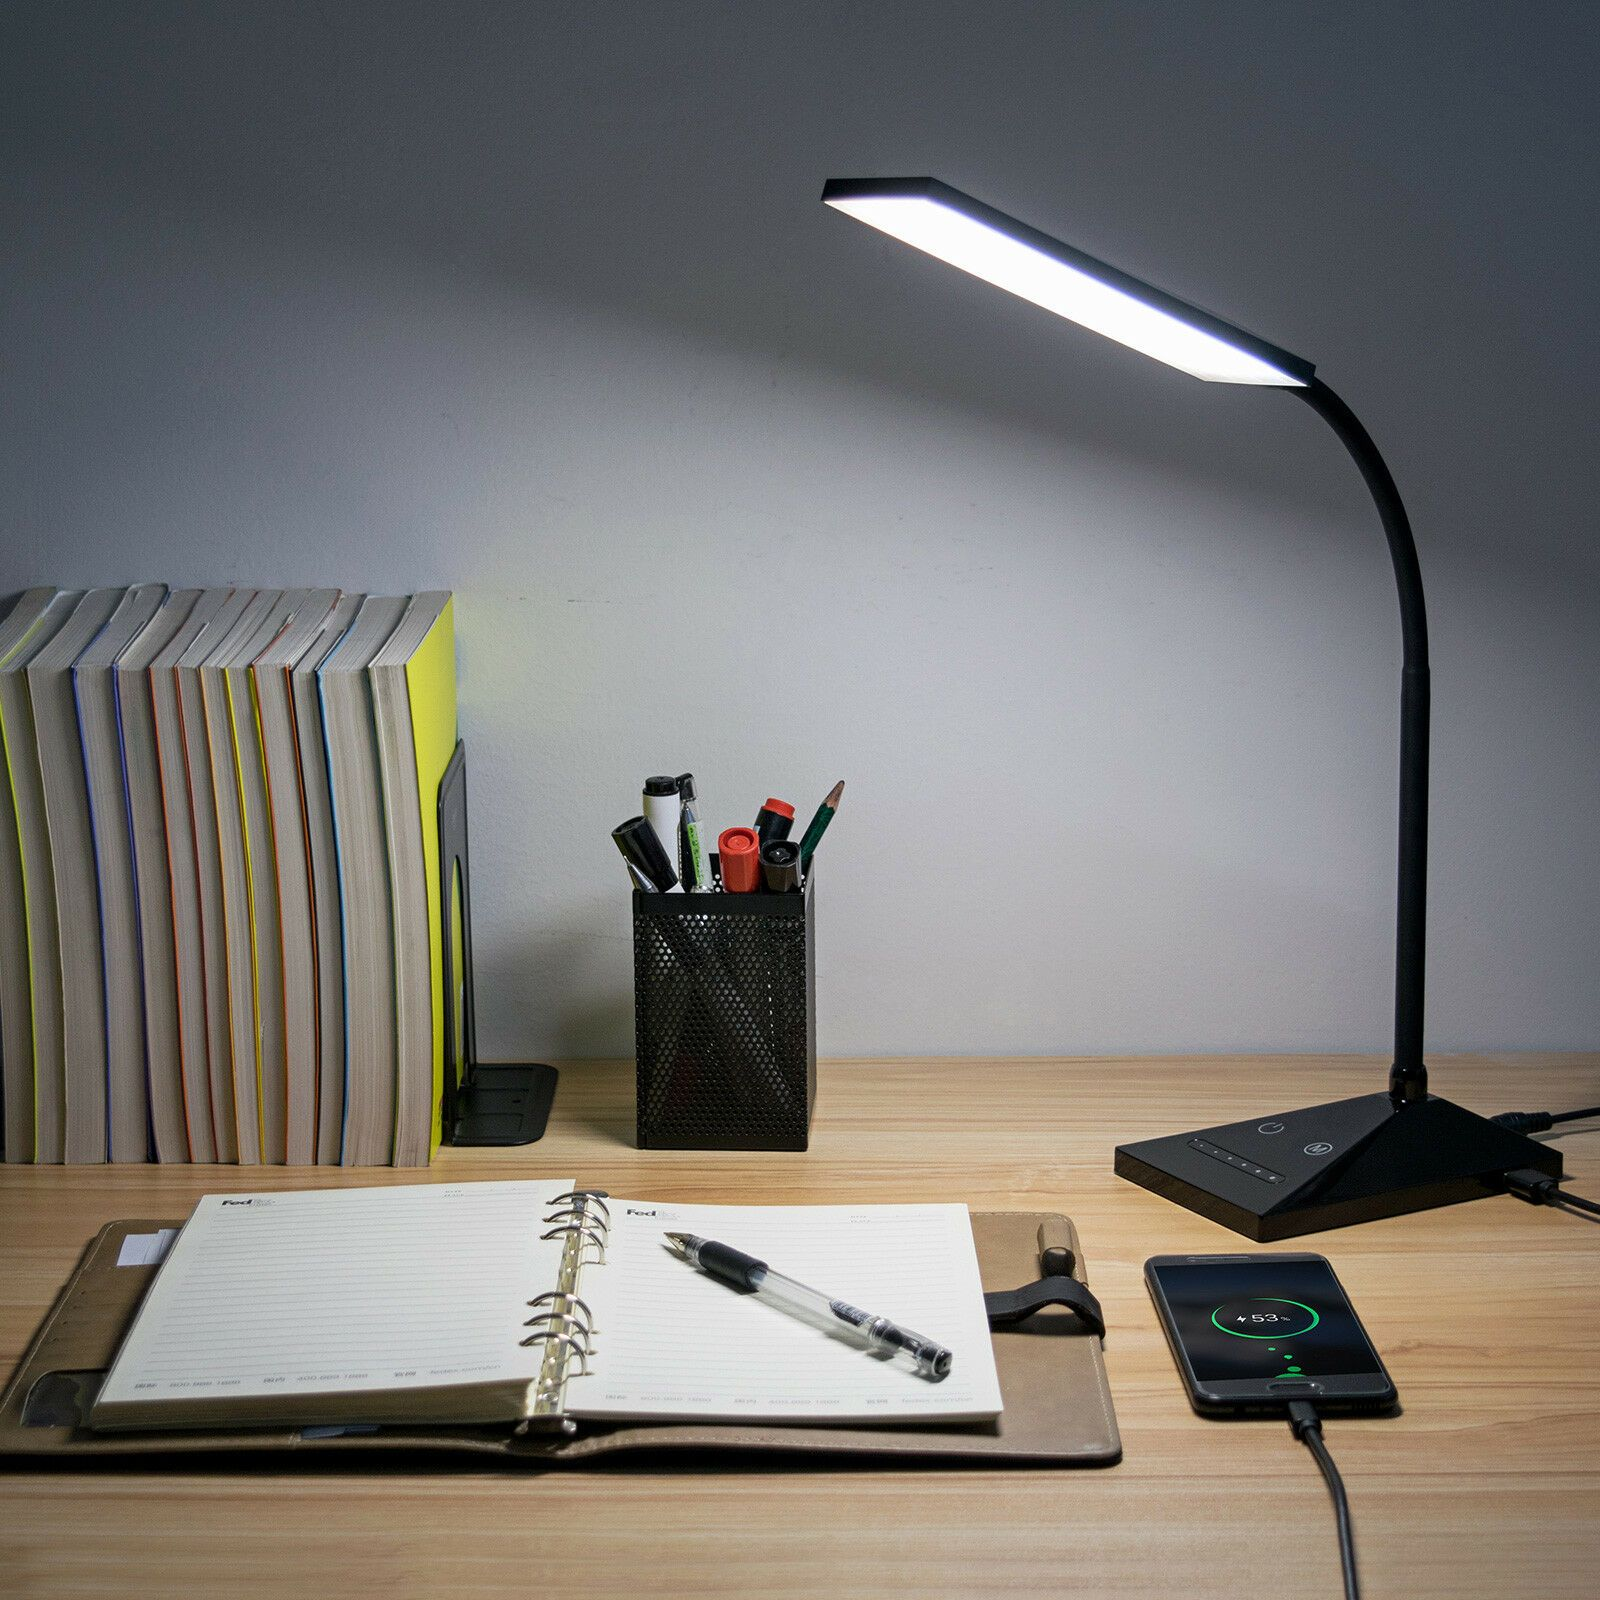 12w 7 Led Touch Sensor Flexible Dimmable Desk Table Lamp Read Light 390lm Power Ebay In 2020 Table Lamp Black Desk Lamps White Desk Lamps